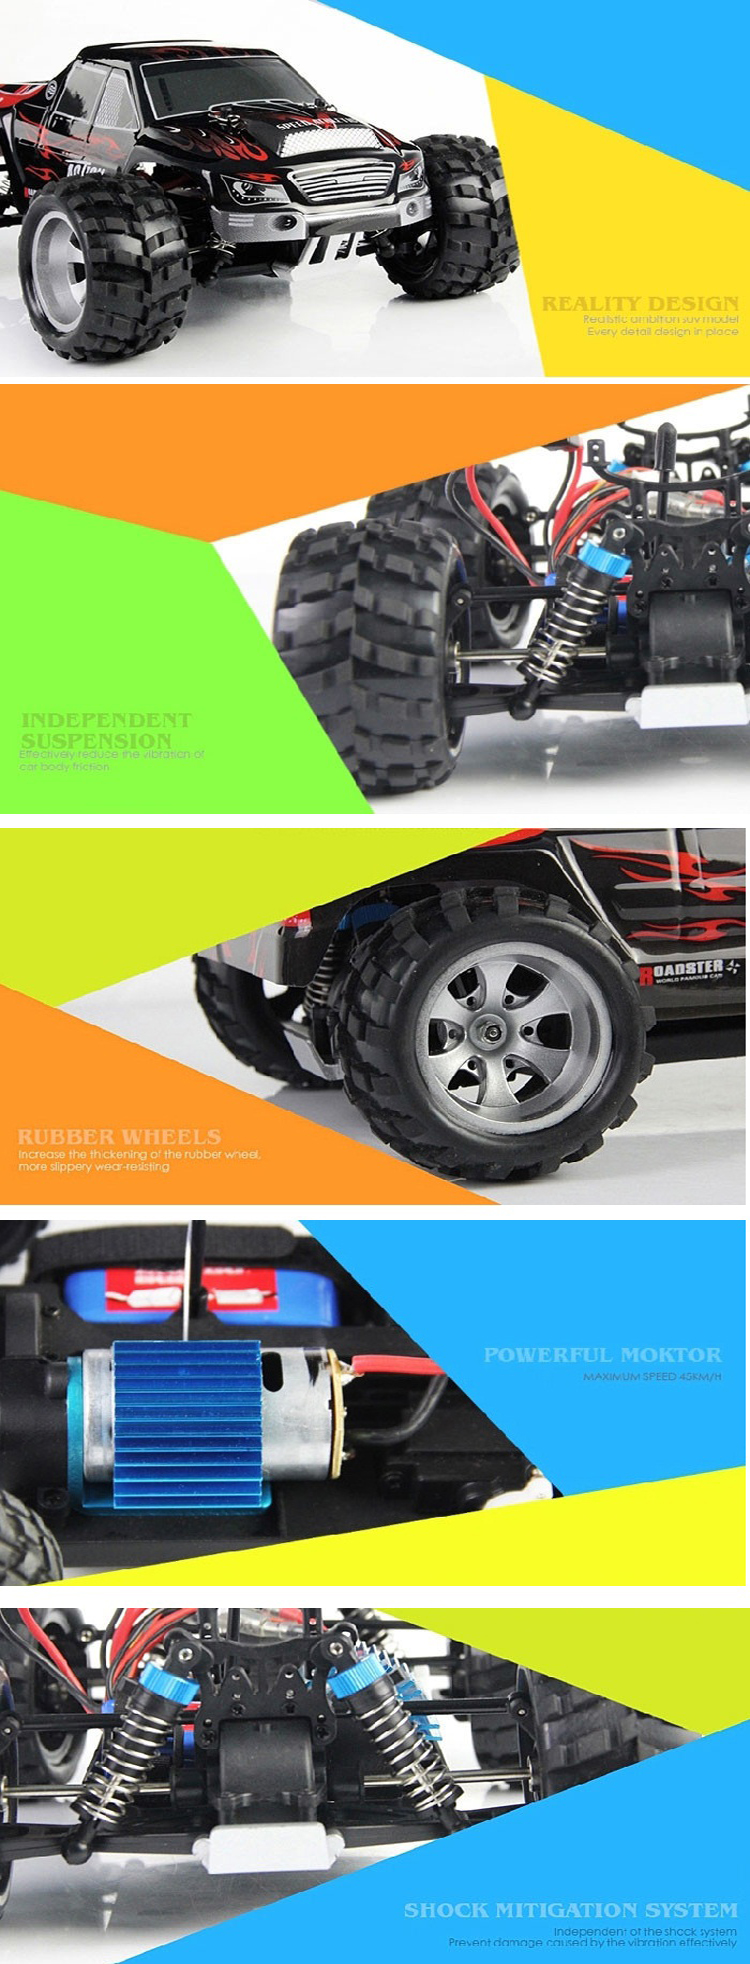 Best seling Global Drone WLToys A979 rc cars models 1/18 Off-Road Vehicle with 2.4G 4CH 4WD RC Car High Speed electric Car.jpg